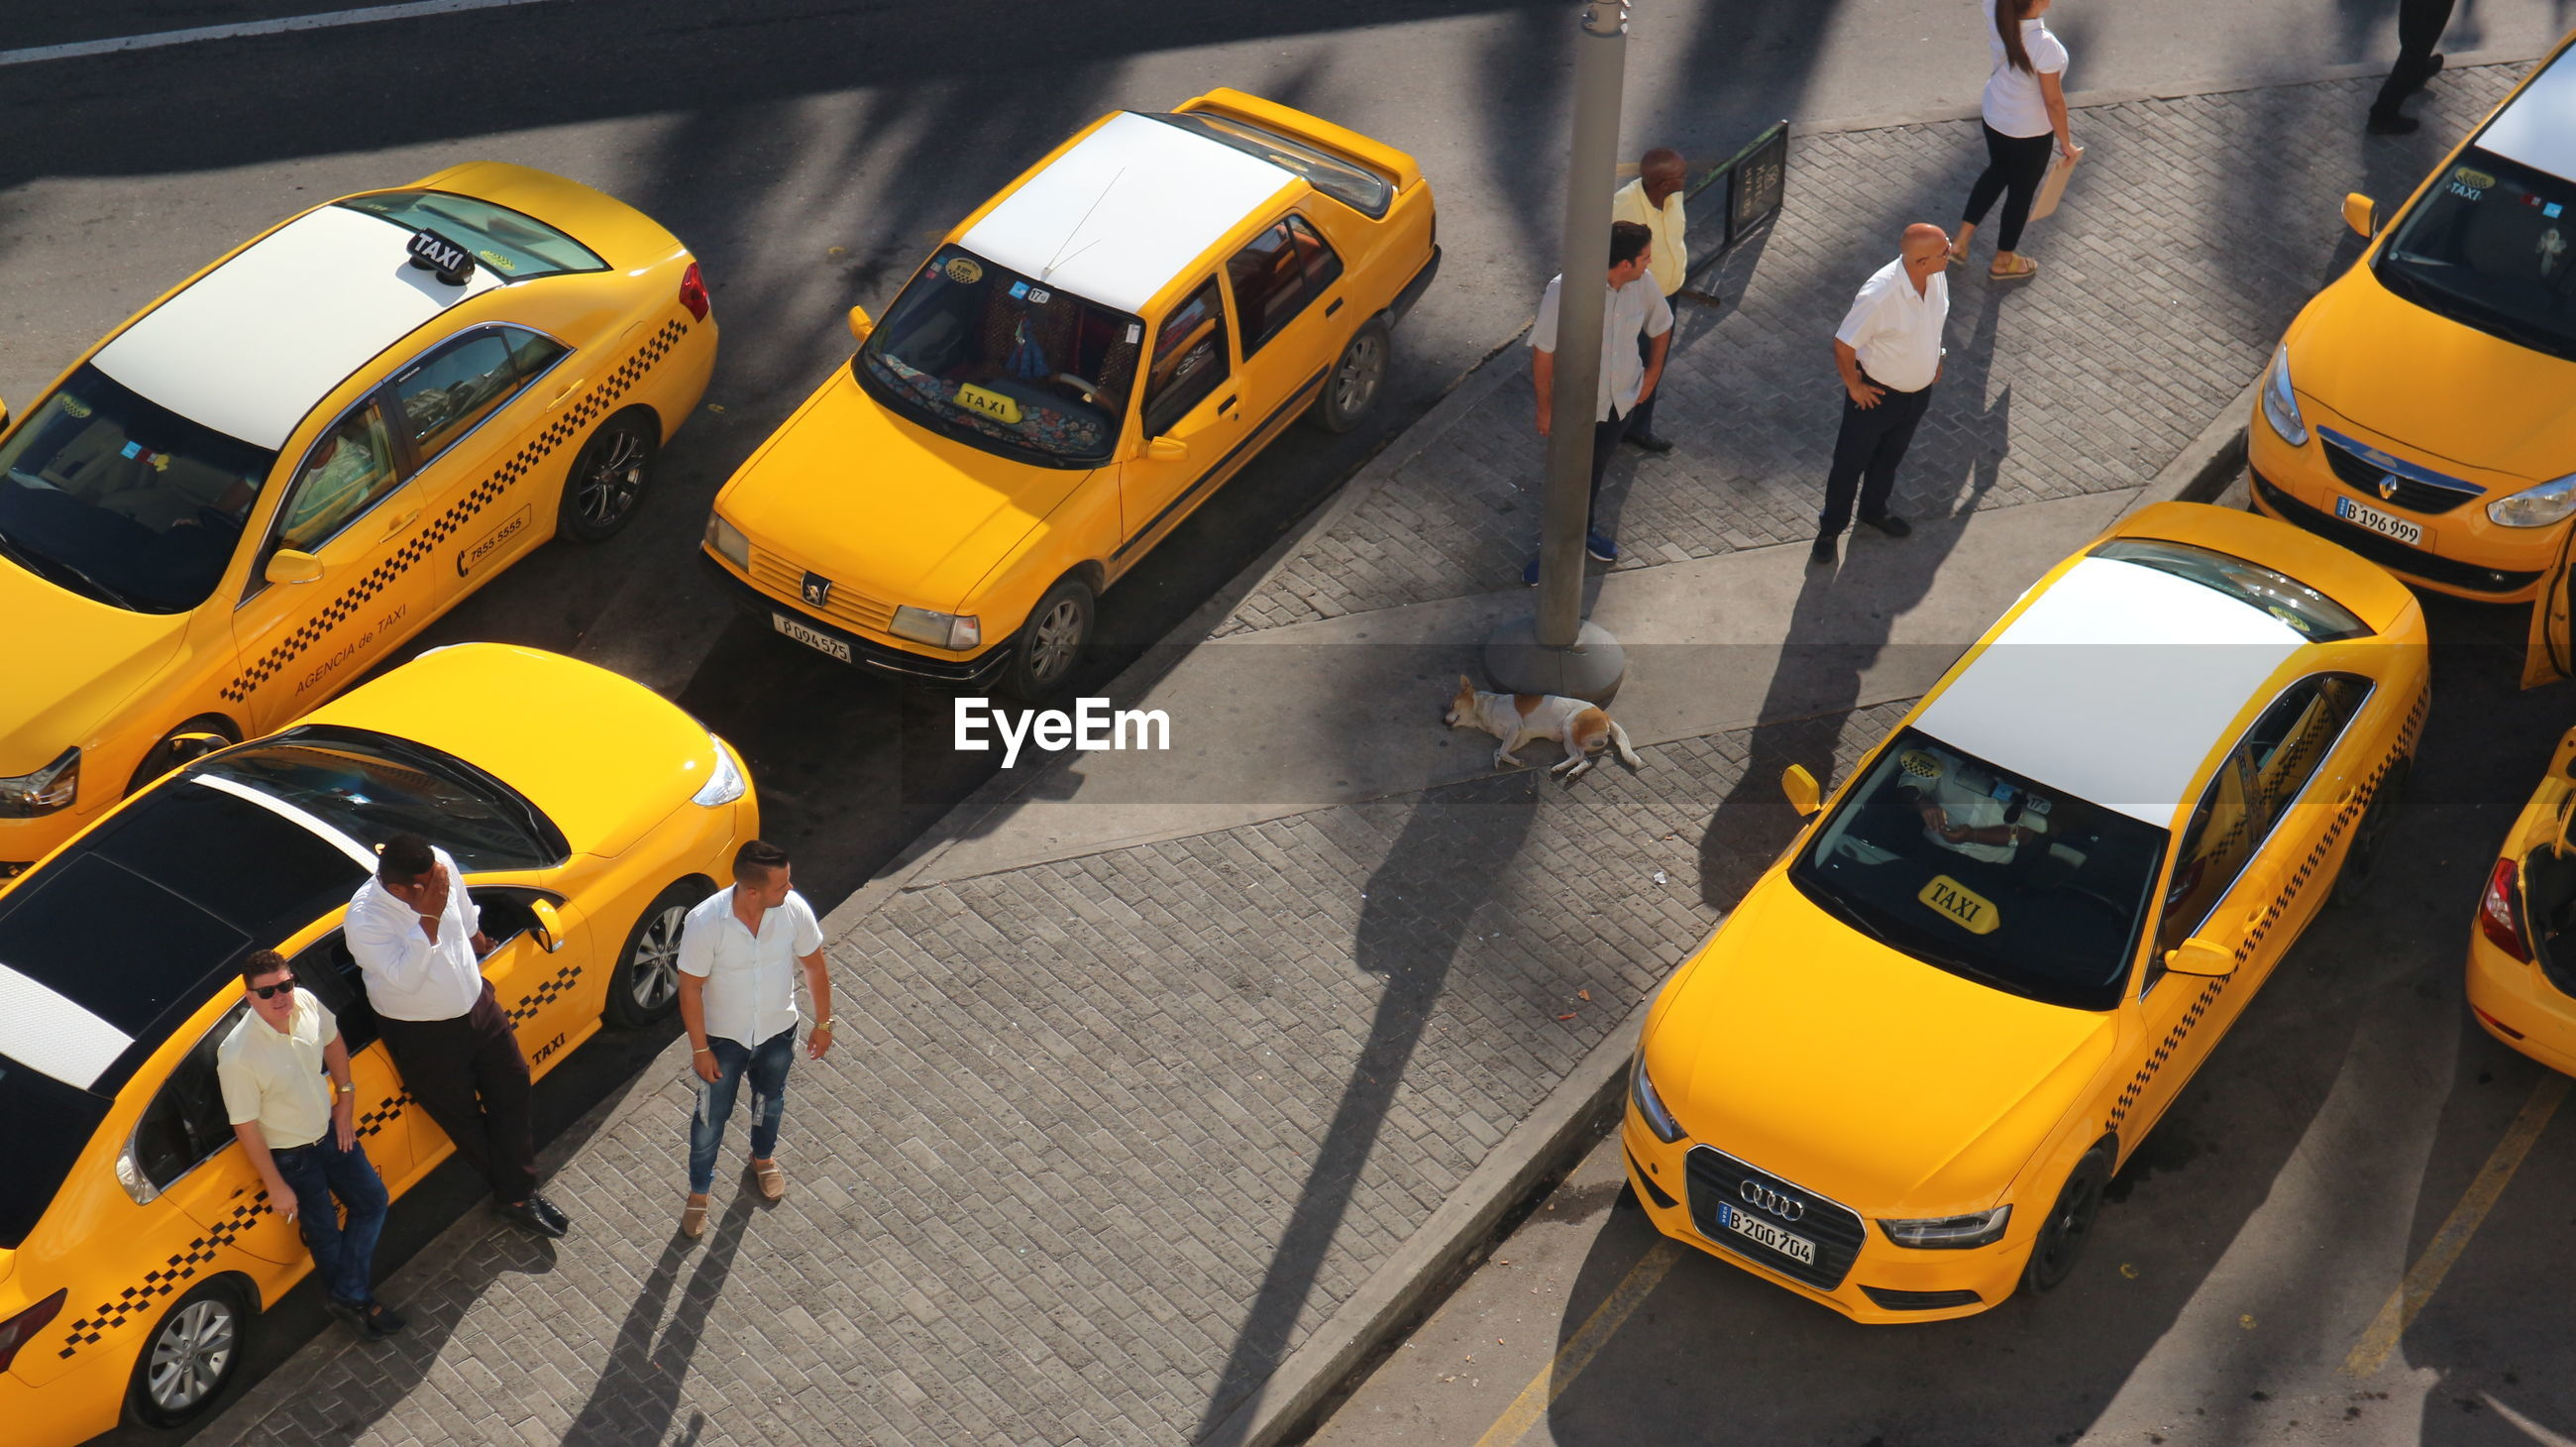 HIGH ANGLE VIEW OF YELLOW CAR ON ROAD